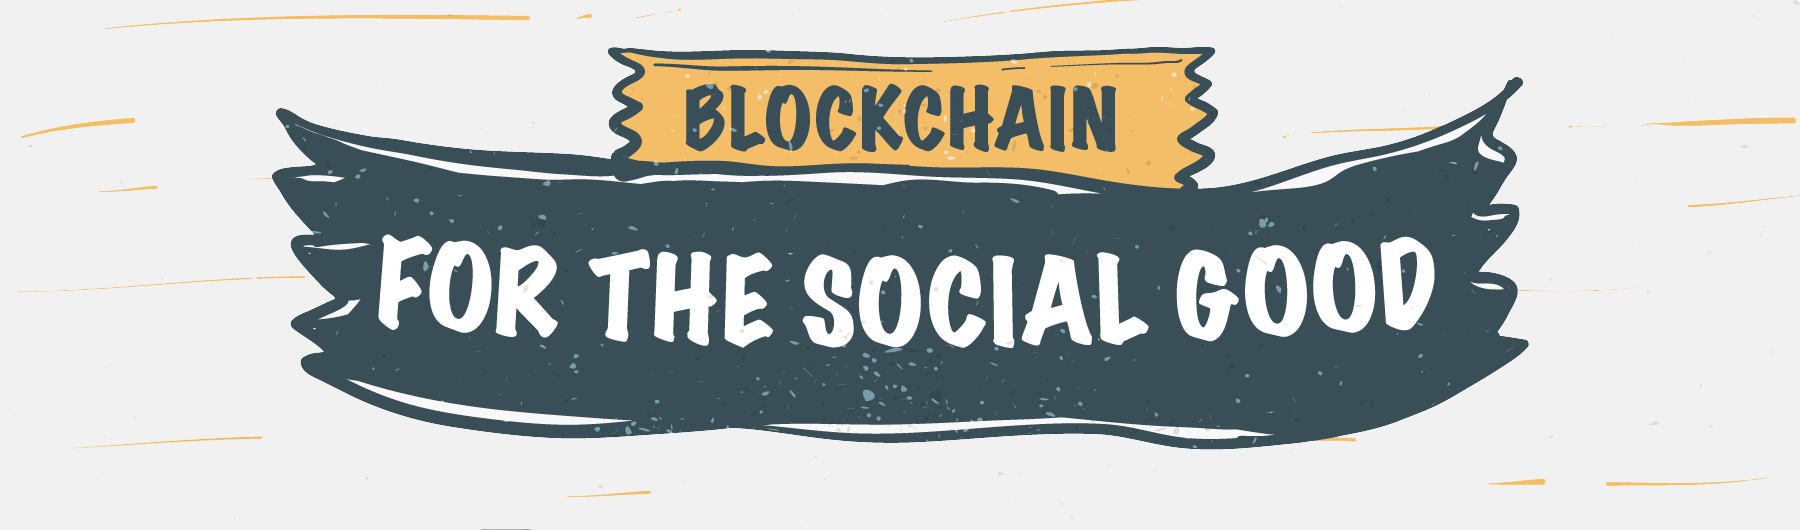 Blockchain for the Social Good